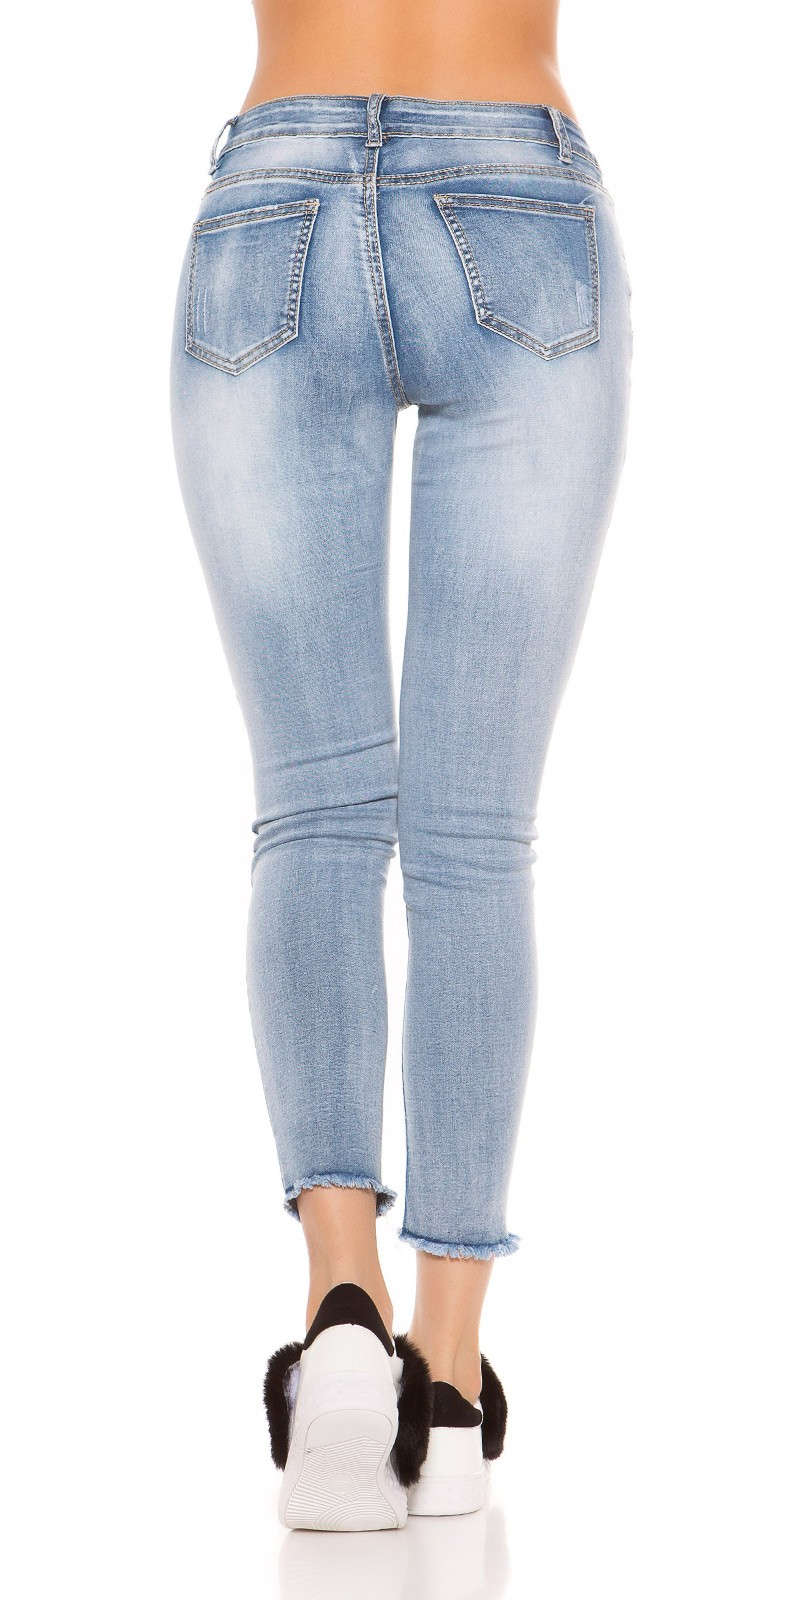 d43cb9bf9b73 kkskinny 78 jeans with lacing  Color JEANSBLUE Size 38 0000P806 JEANSBLAU 2  ·  kkskinny 78 jeans with lacing  Color JEANSBLUE Size 38 0000P806 JEANSBLAU 3